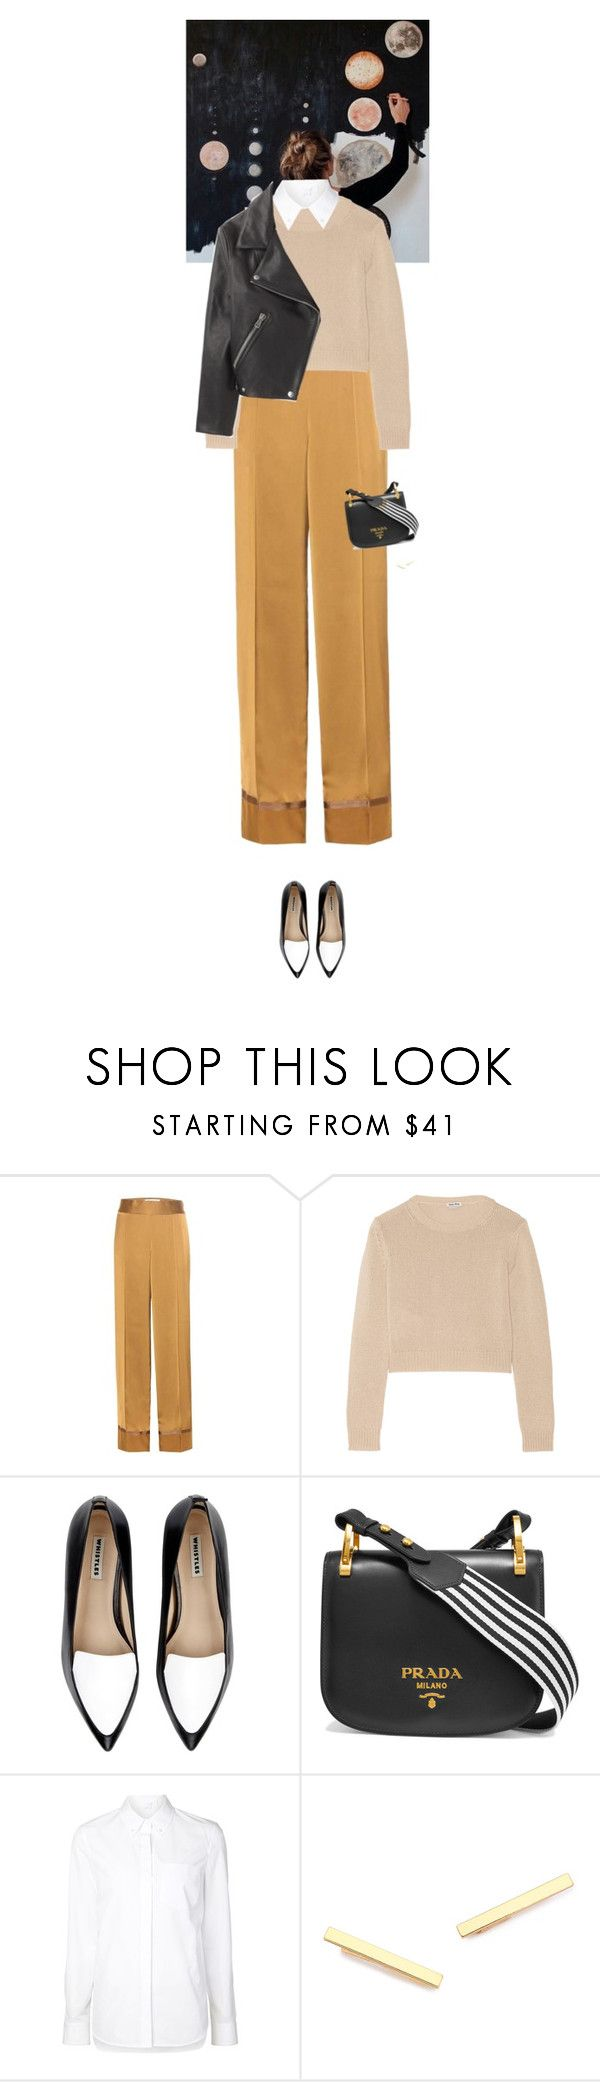 """""""Outfit of the Day"""" by wizmurphy on Polyvore featuring Maison Margiela, Miu Miu, Whistles, Prada, Alexander Wang, Gorjana, Acne Studios, ootd and pajamaparty"""